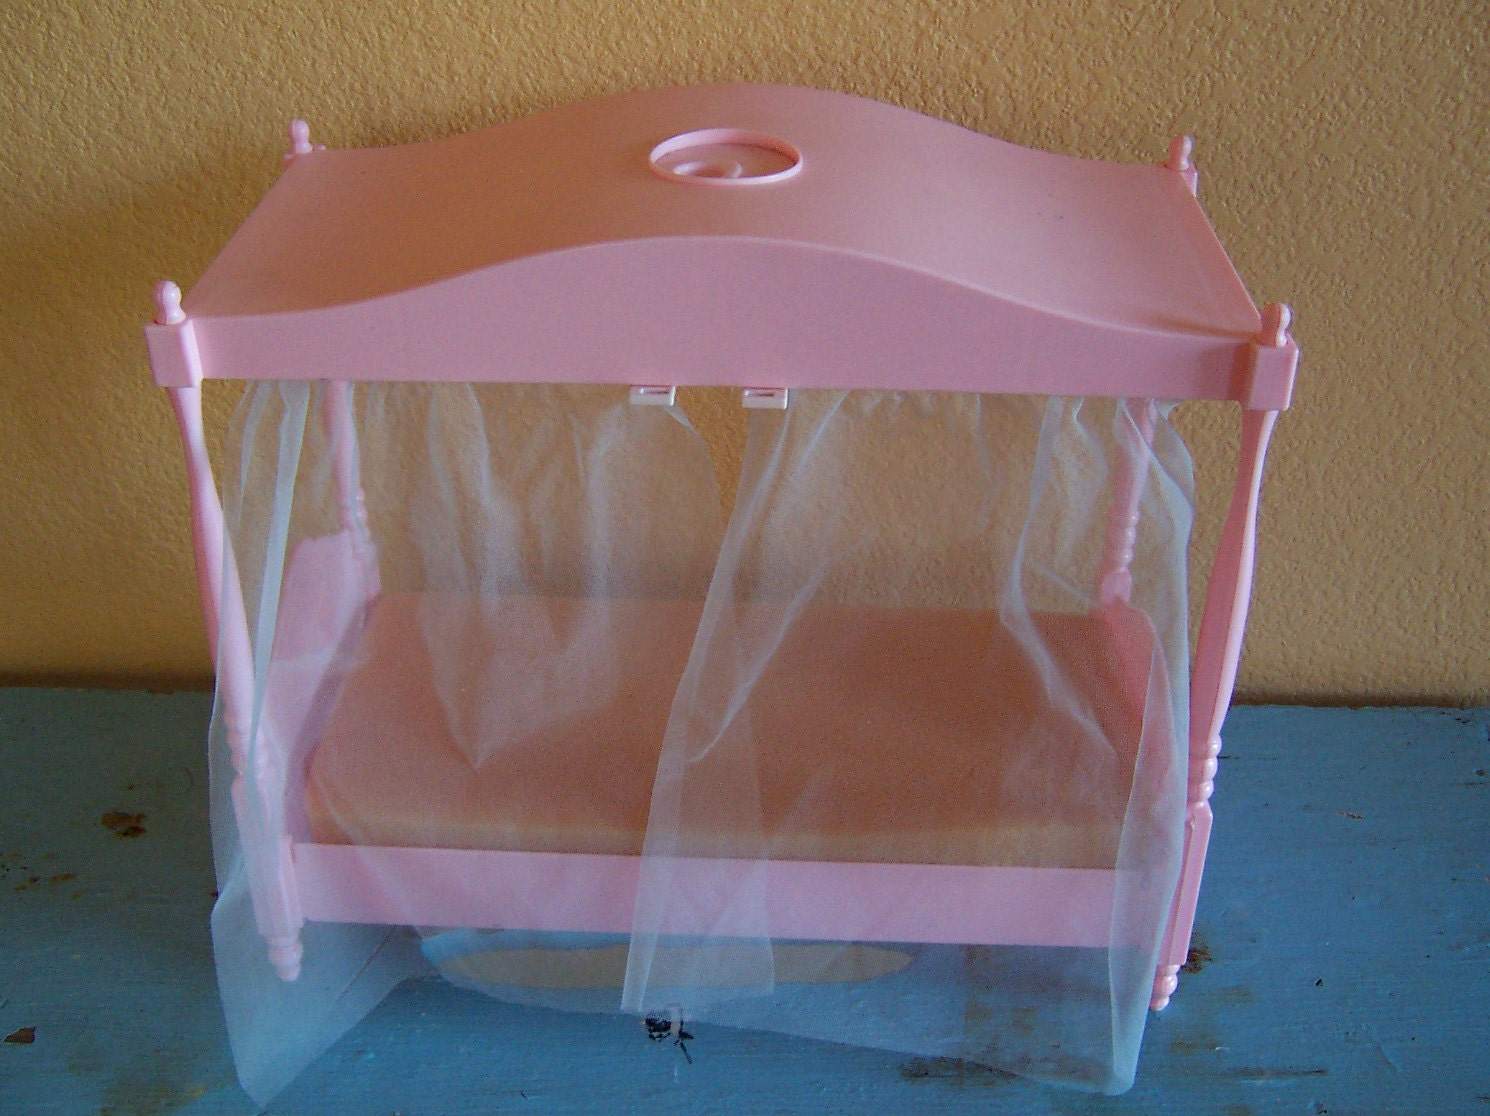 Bed canopy with fairy lights bangdodo - 1982 Barbie Canopy Bed By Ricracandbuttons On Etsy